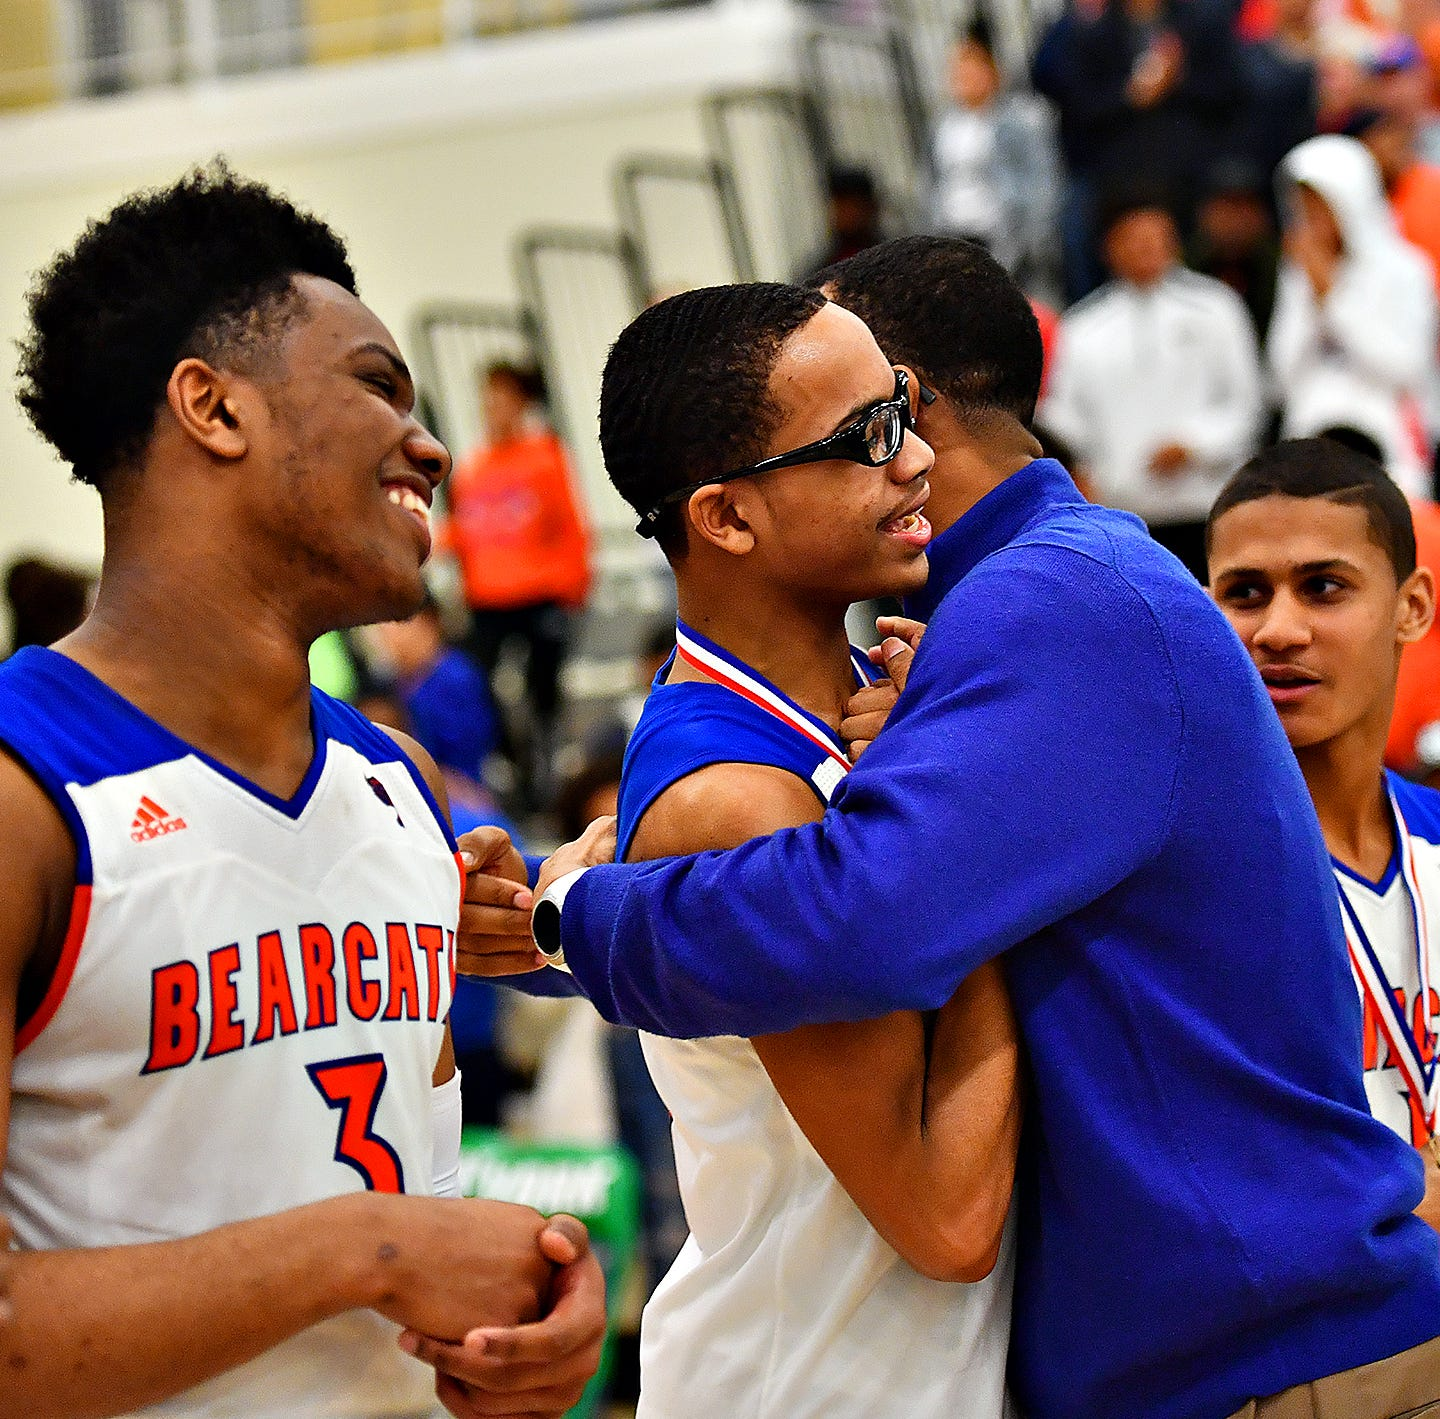 York High's Y-A League boys' basketball championship extra special for Gallon family